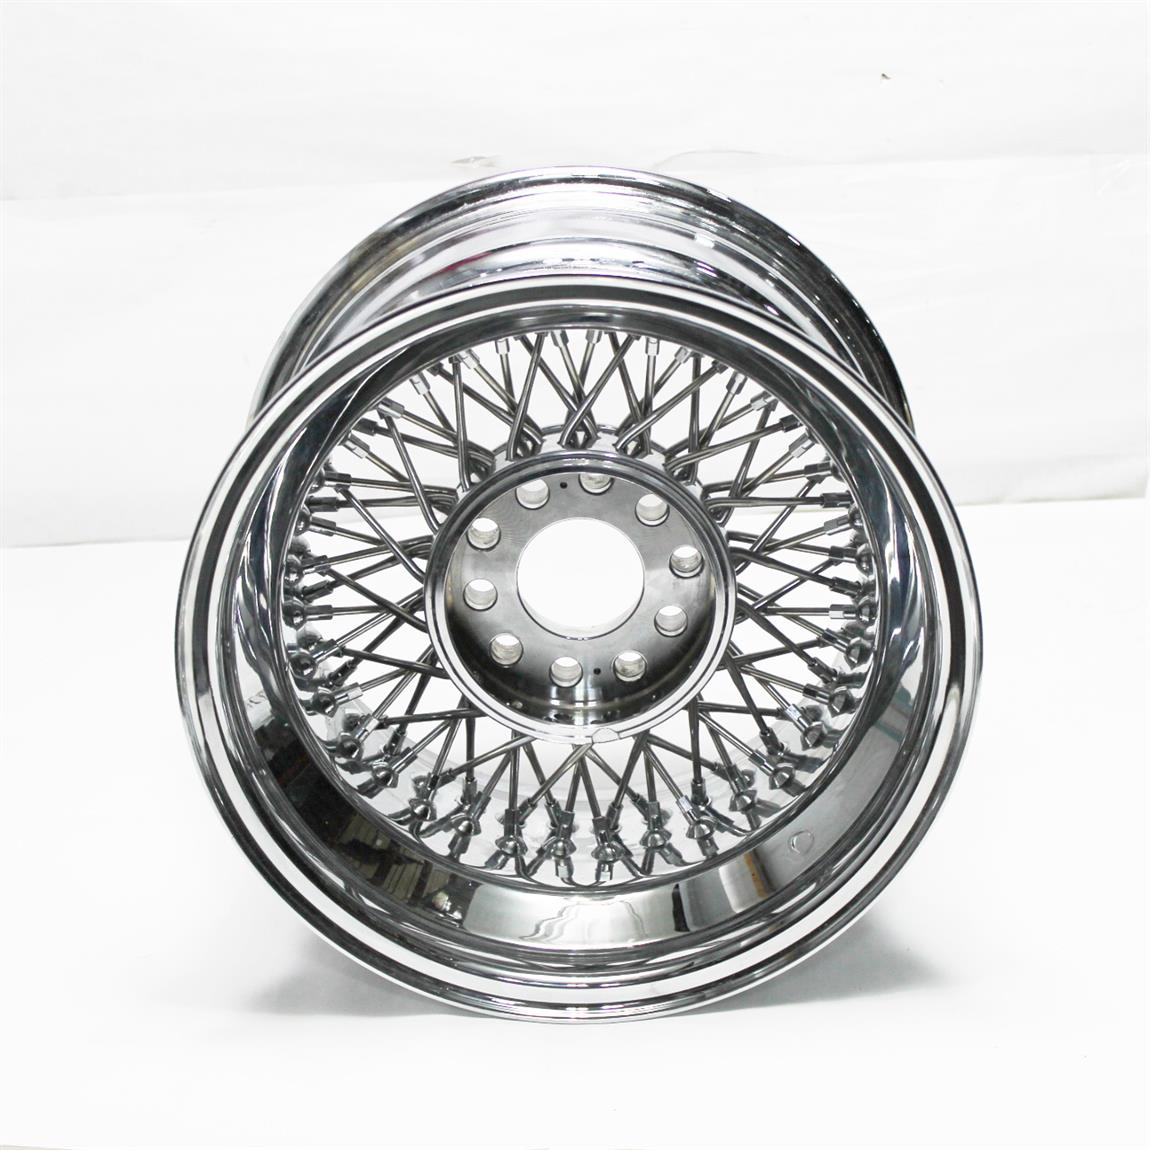 Dayton Wire Wheels, Street Rod Parts - Free Shipping @ Speedway Motors